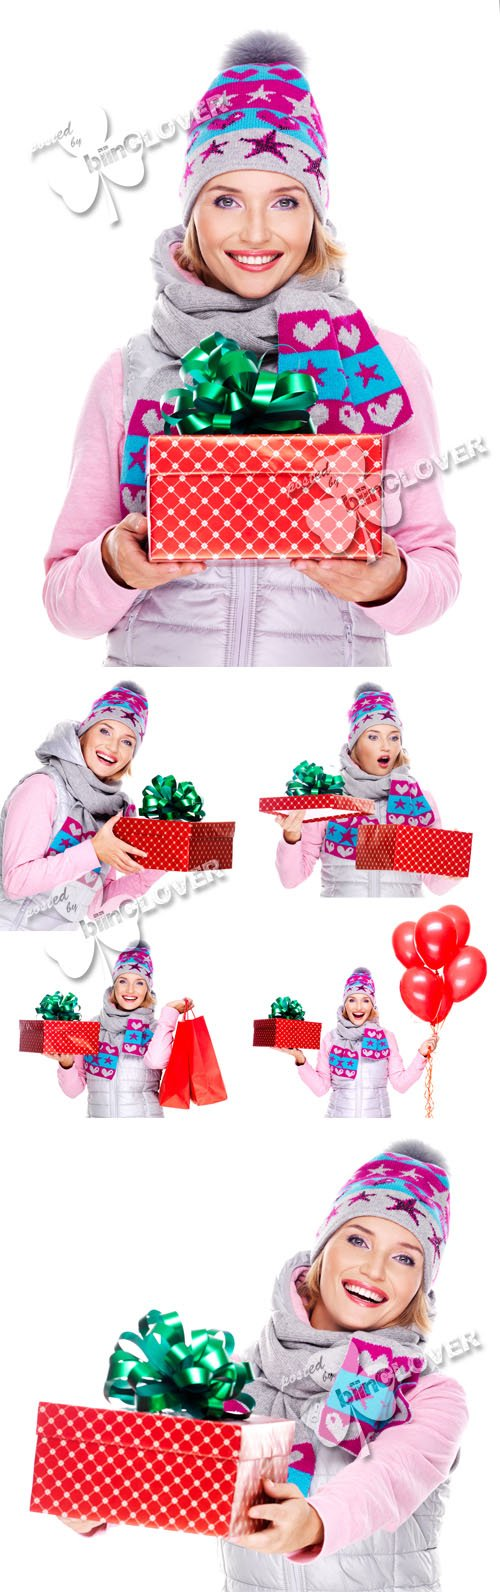 Woman and Christmas gifts